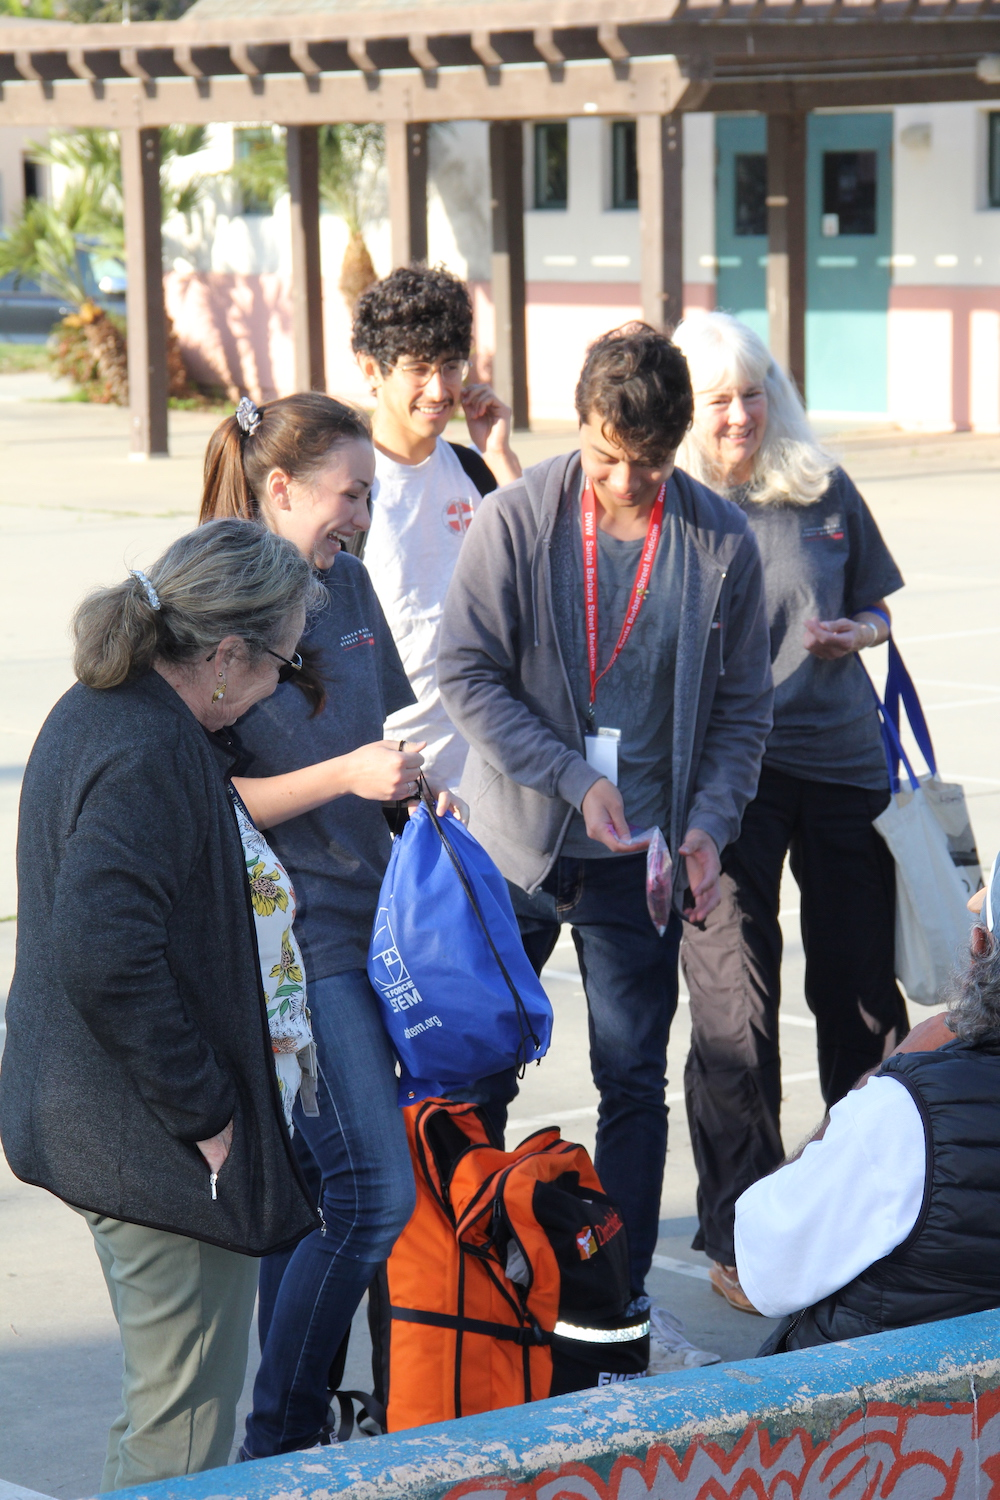 DWW's Companion Care Outreach Specialists are among 180 doctors, nurses and medical students who volunteer to provide care to homeless neighbors.